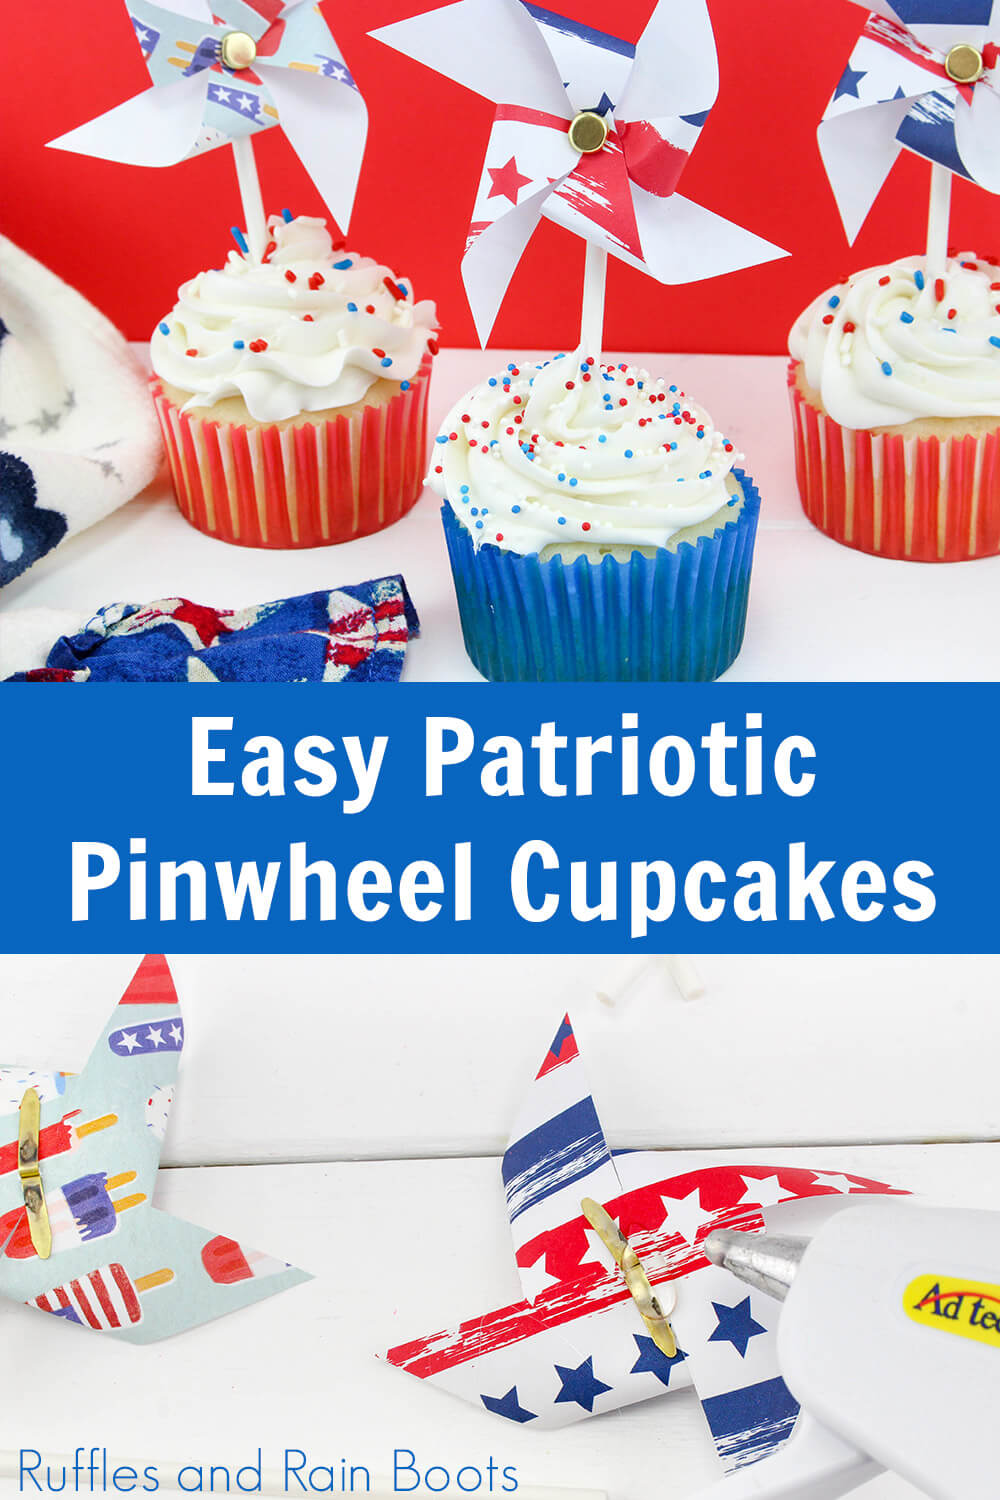 photo collage of cupcakes with pinwheels on top with text which reads easy patriotic pinwheel cupcakes